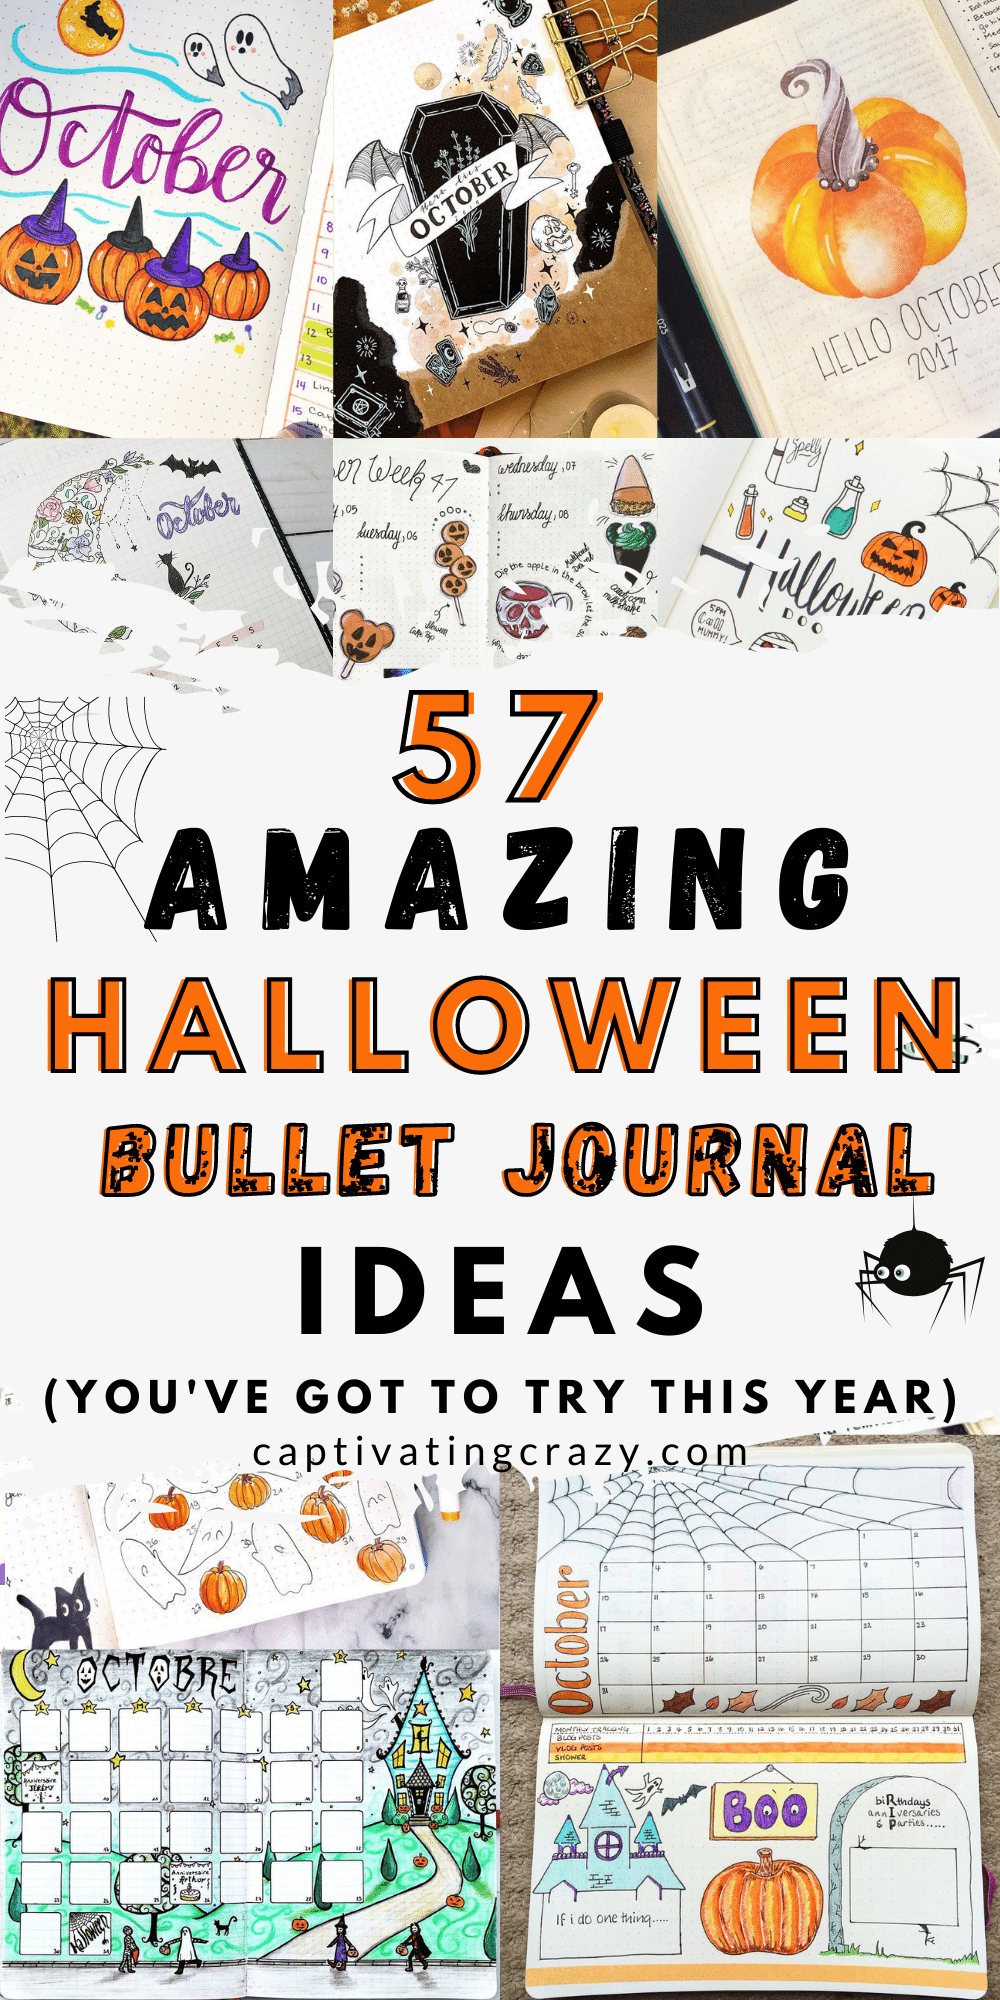 57 Amazing Halloween Bullet Journal Ideas You Need To Try This Year!